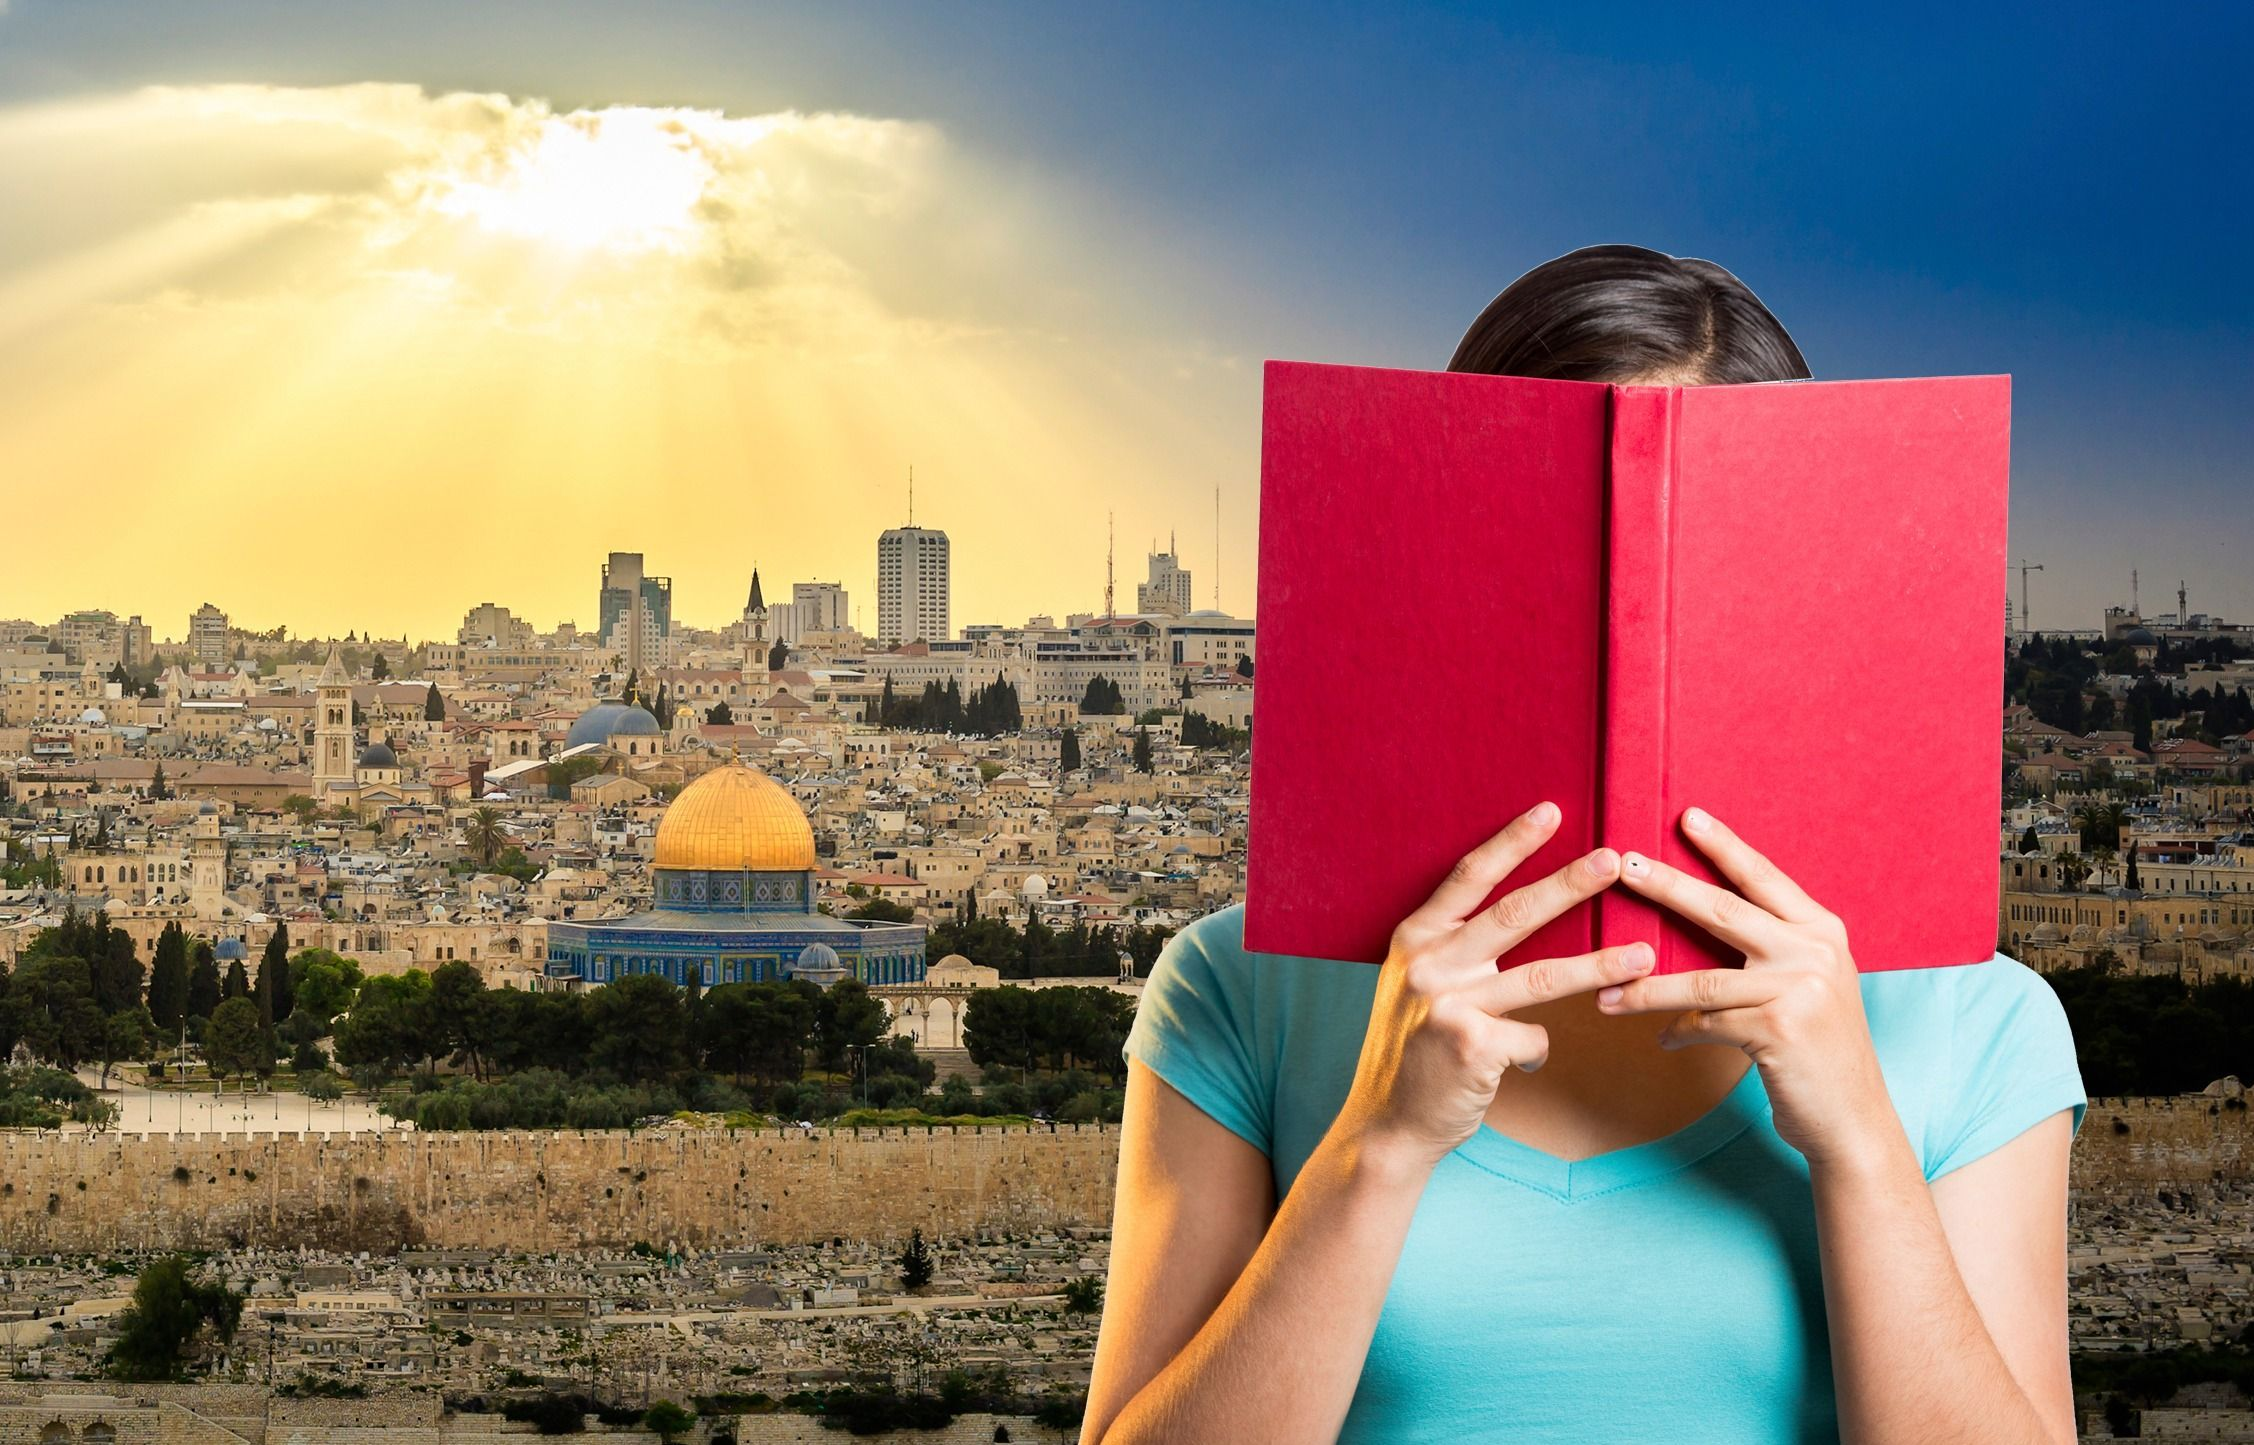 If You Want To Understand Israel, Read Its Literature